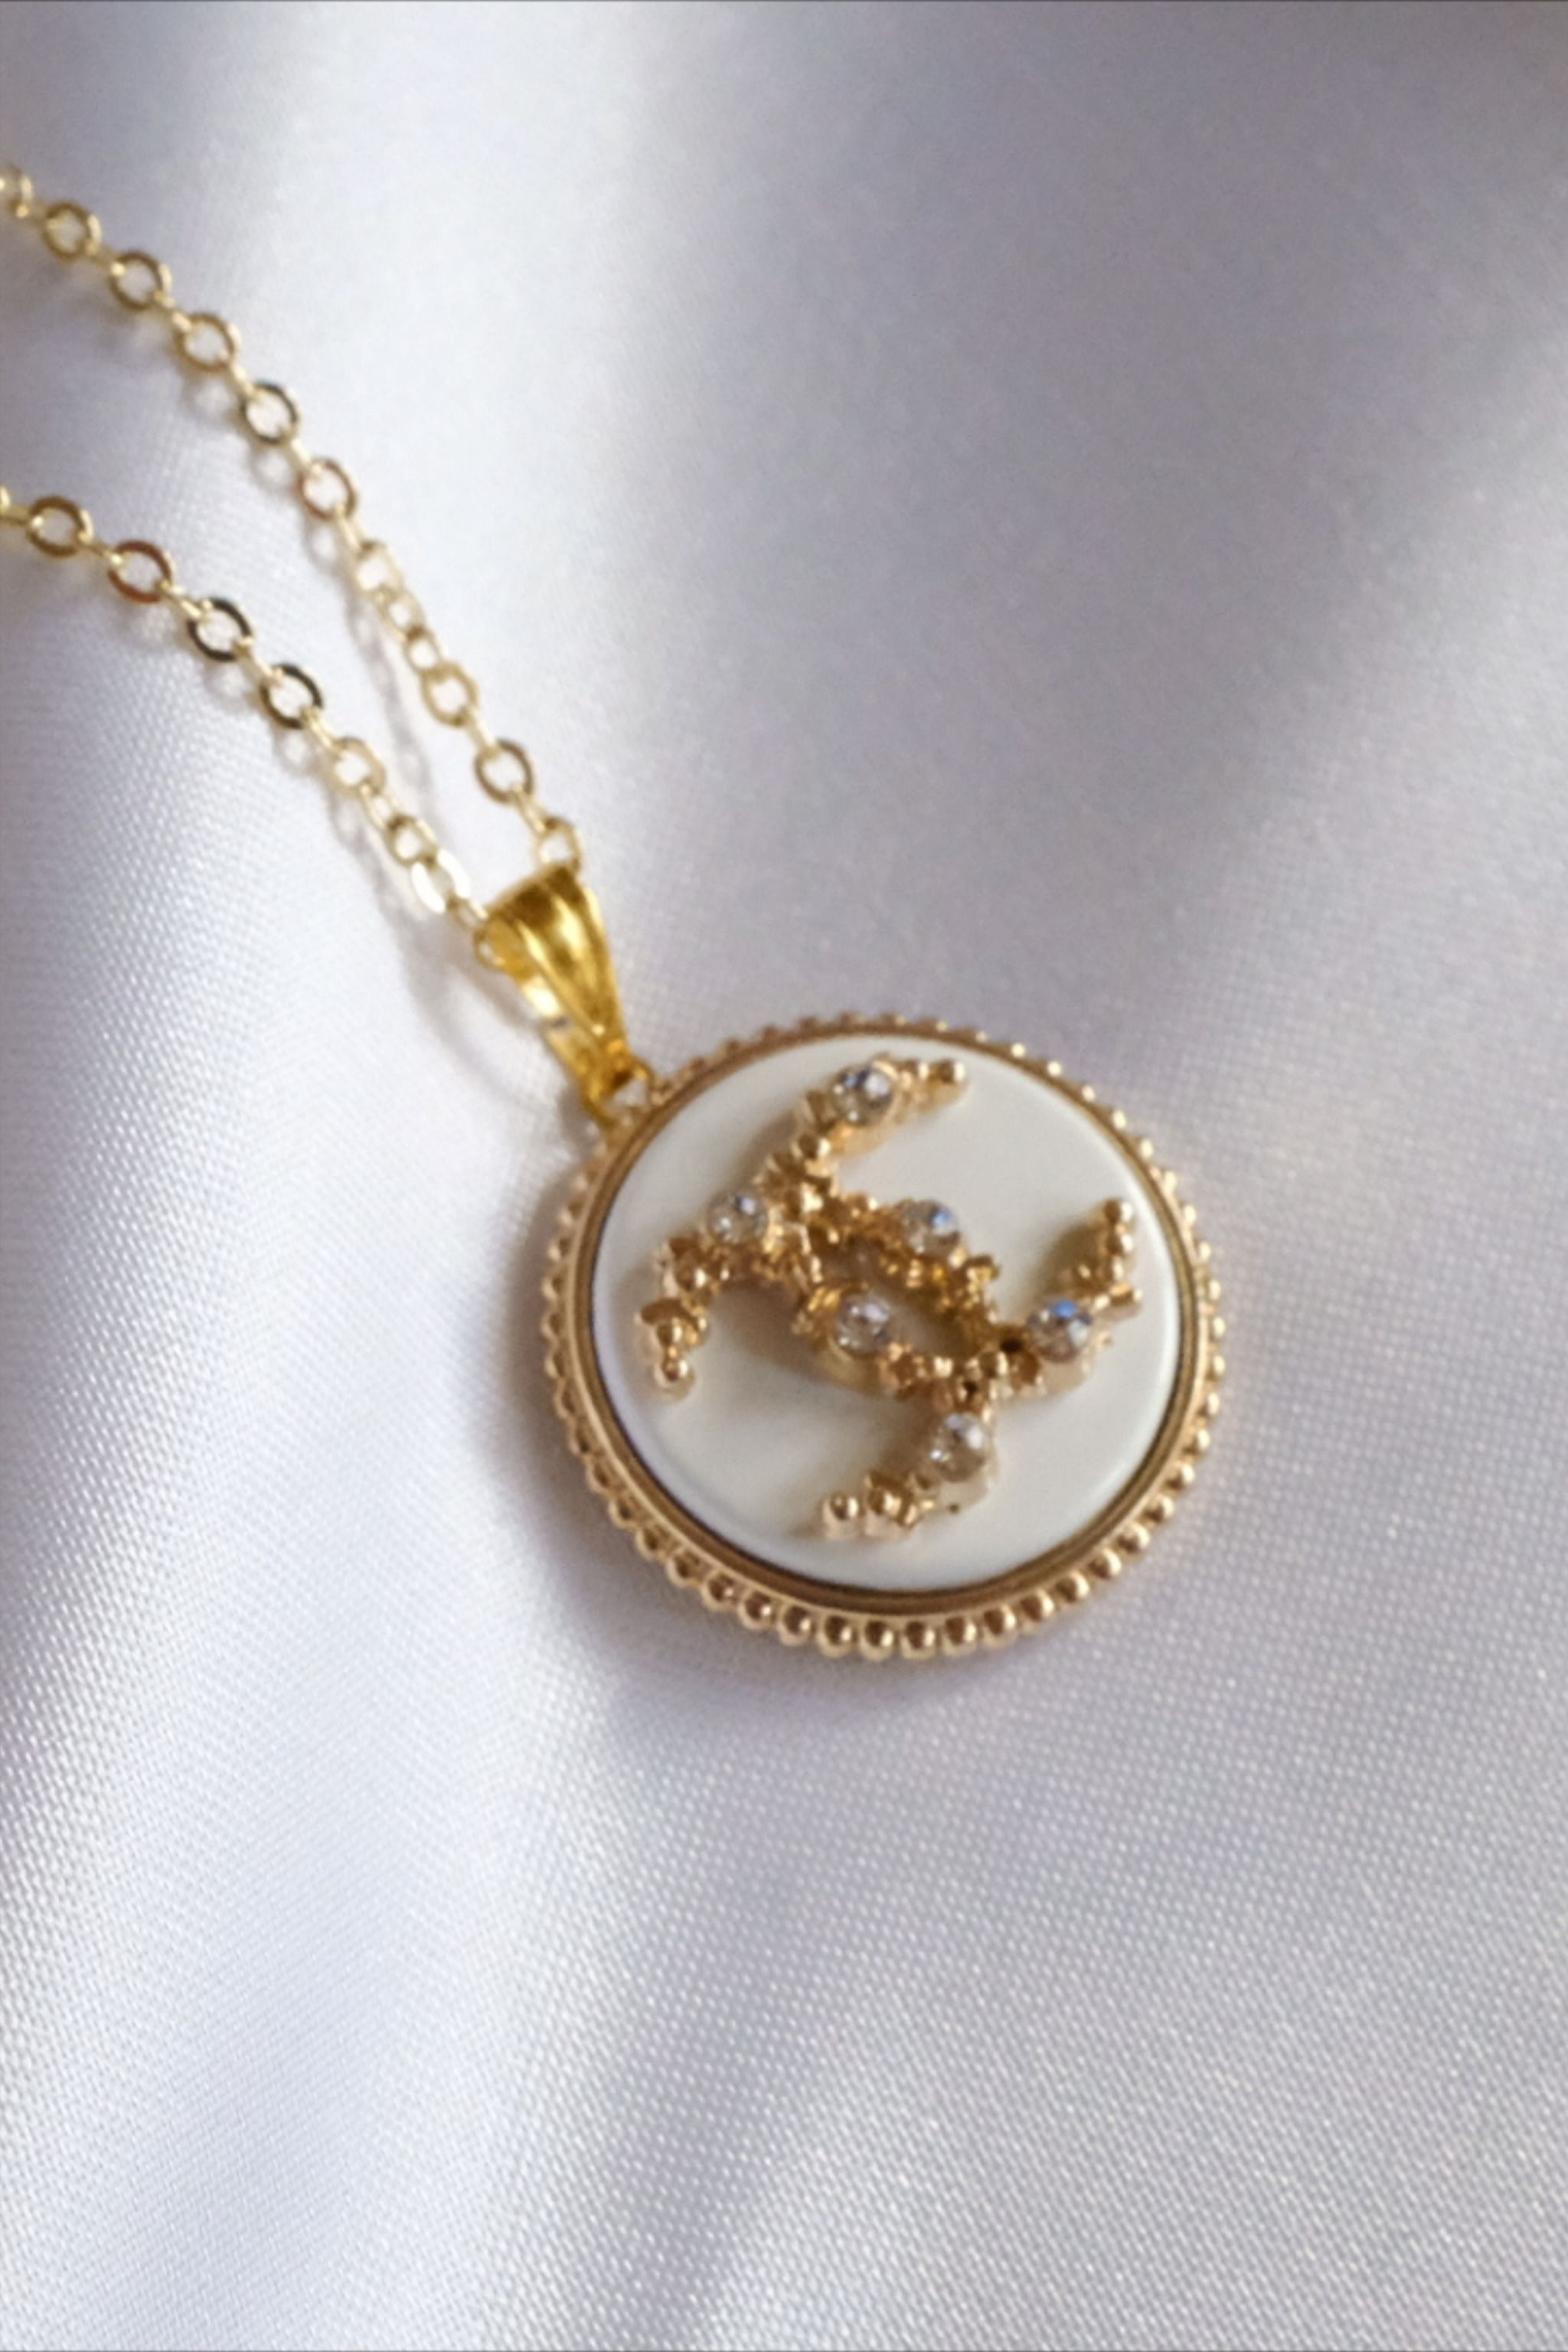 37+ Jewelry made from designer buttons ideas